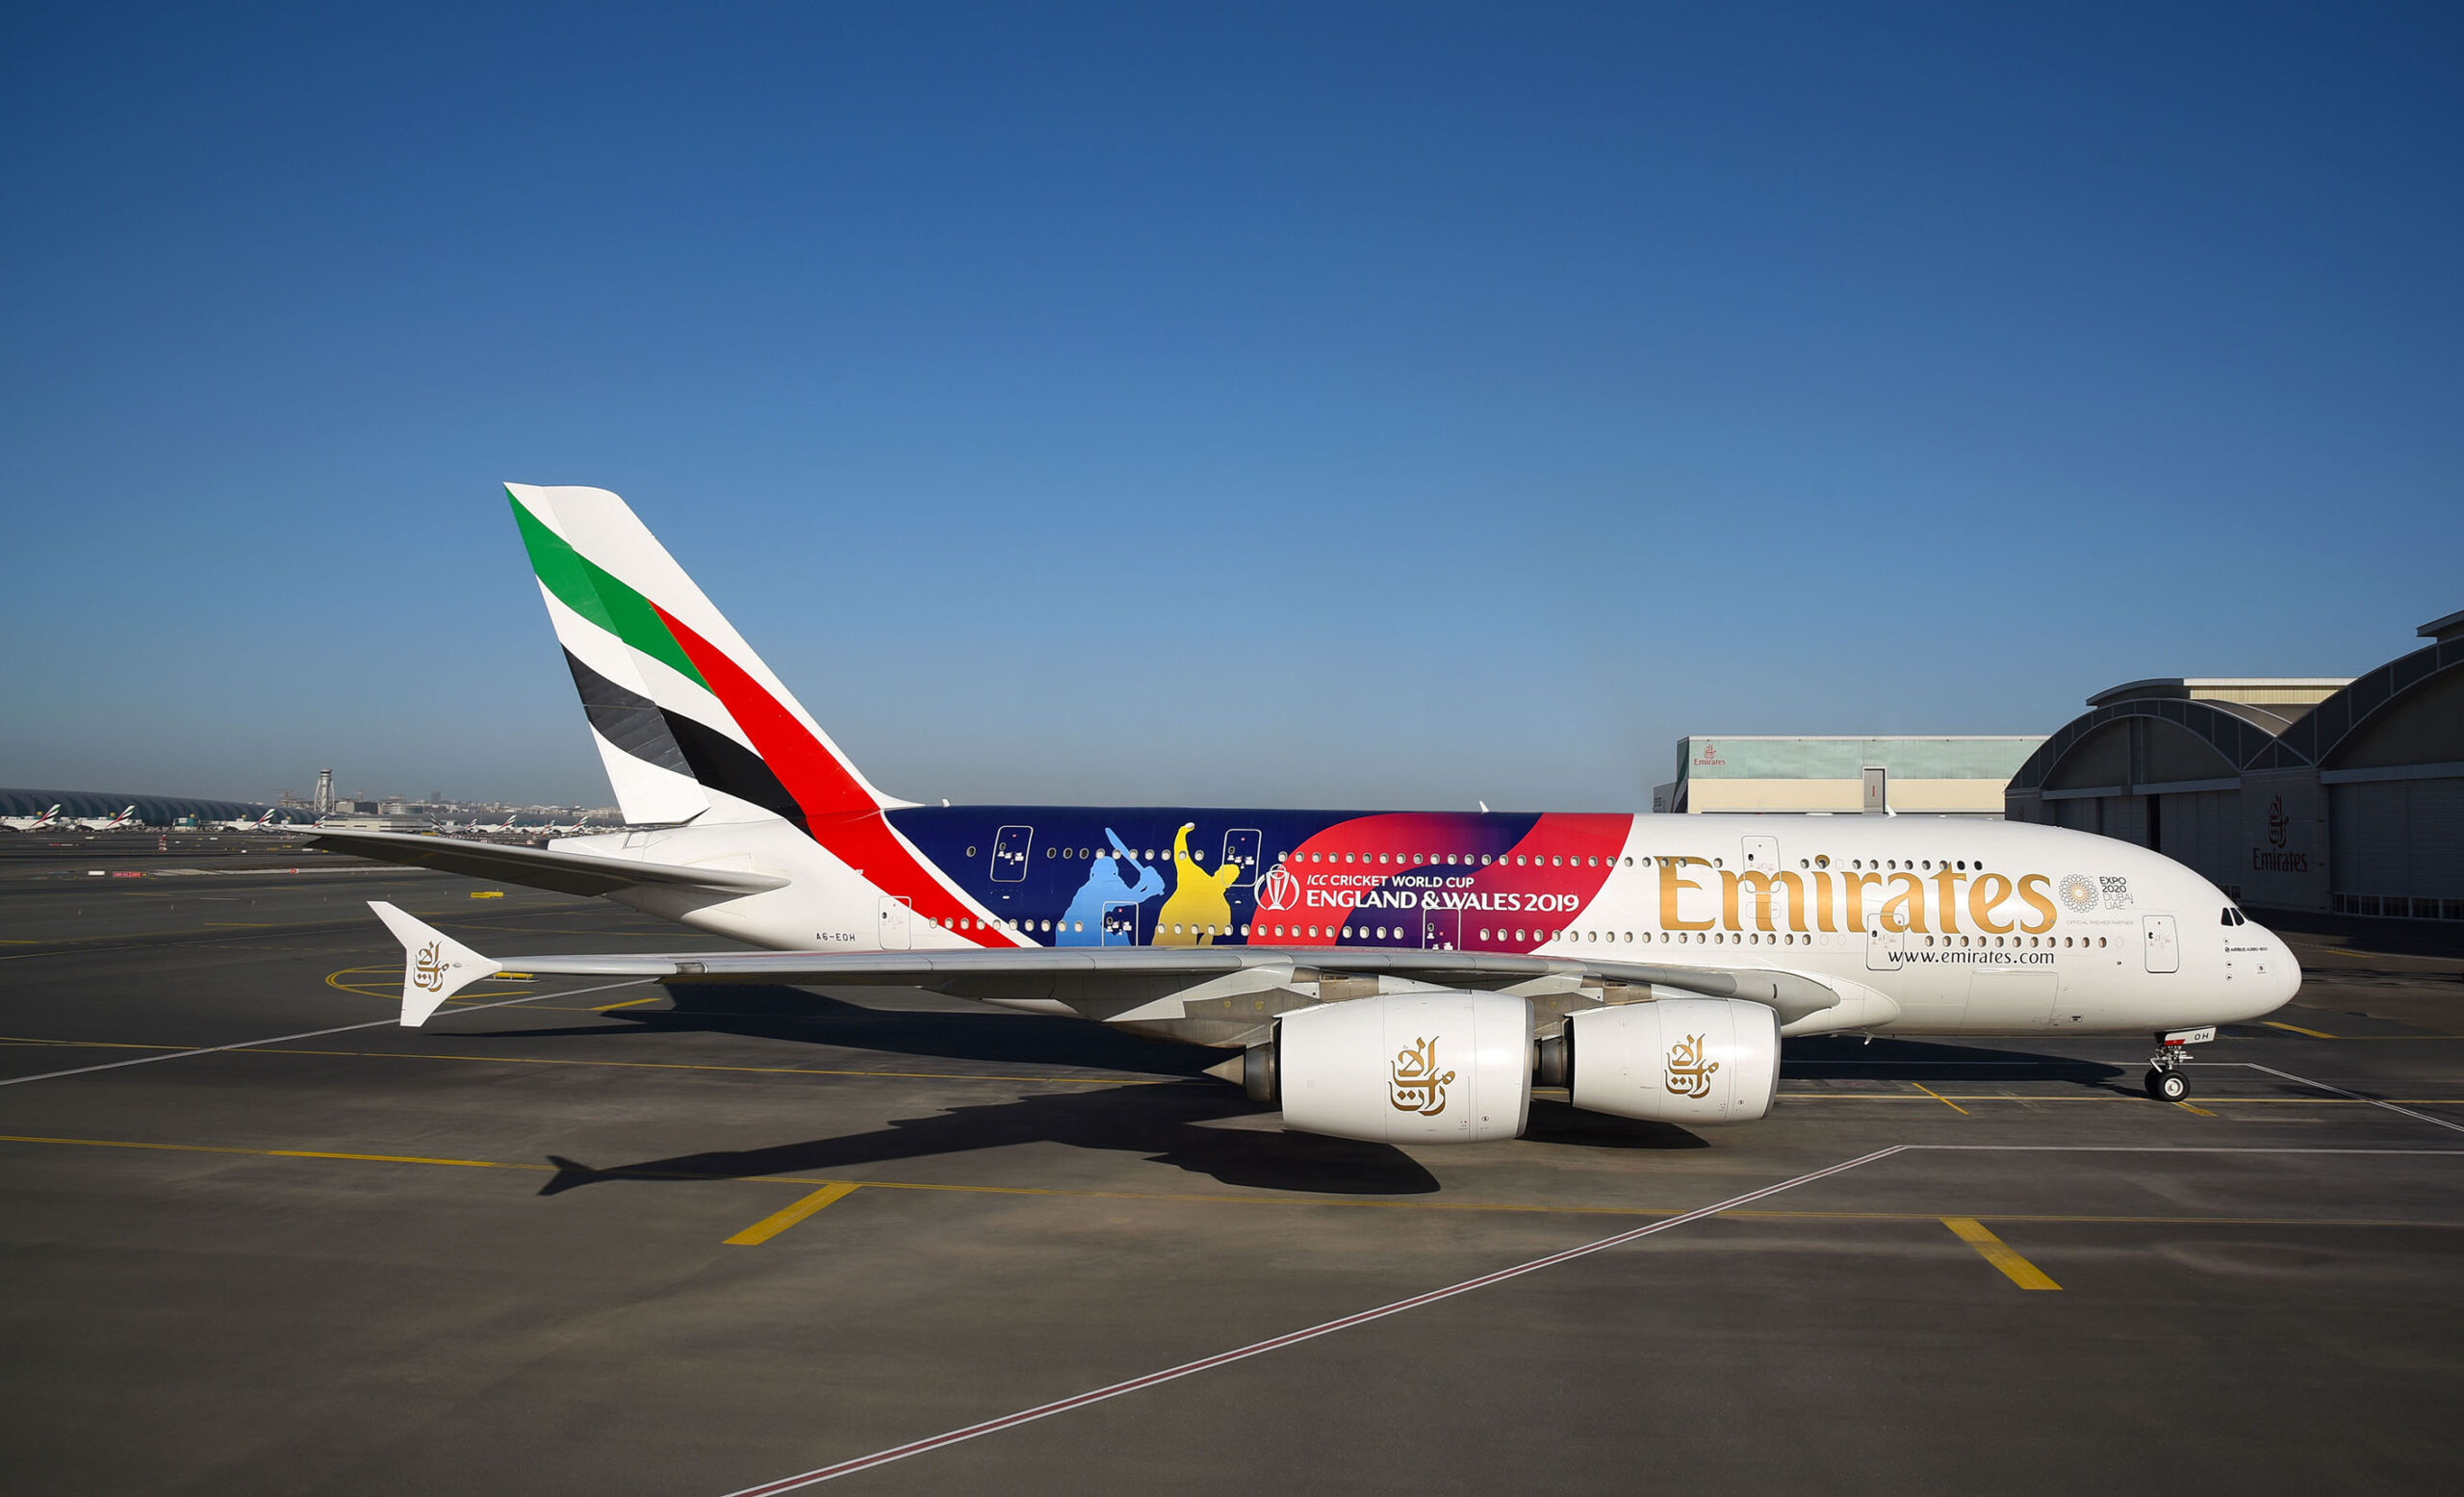 Cricket fever builds as Emirates reveals ICC Cricket World Cup-liveried A380